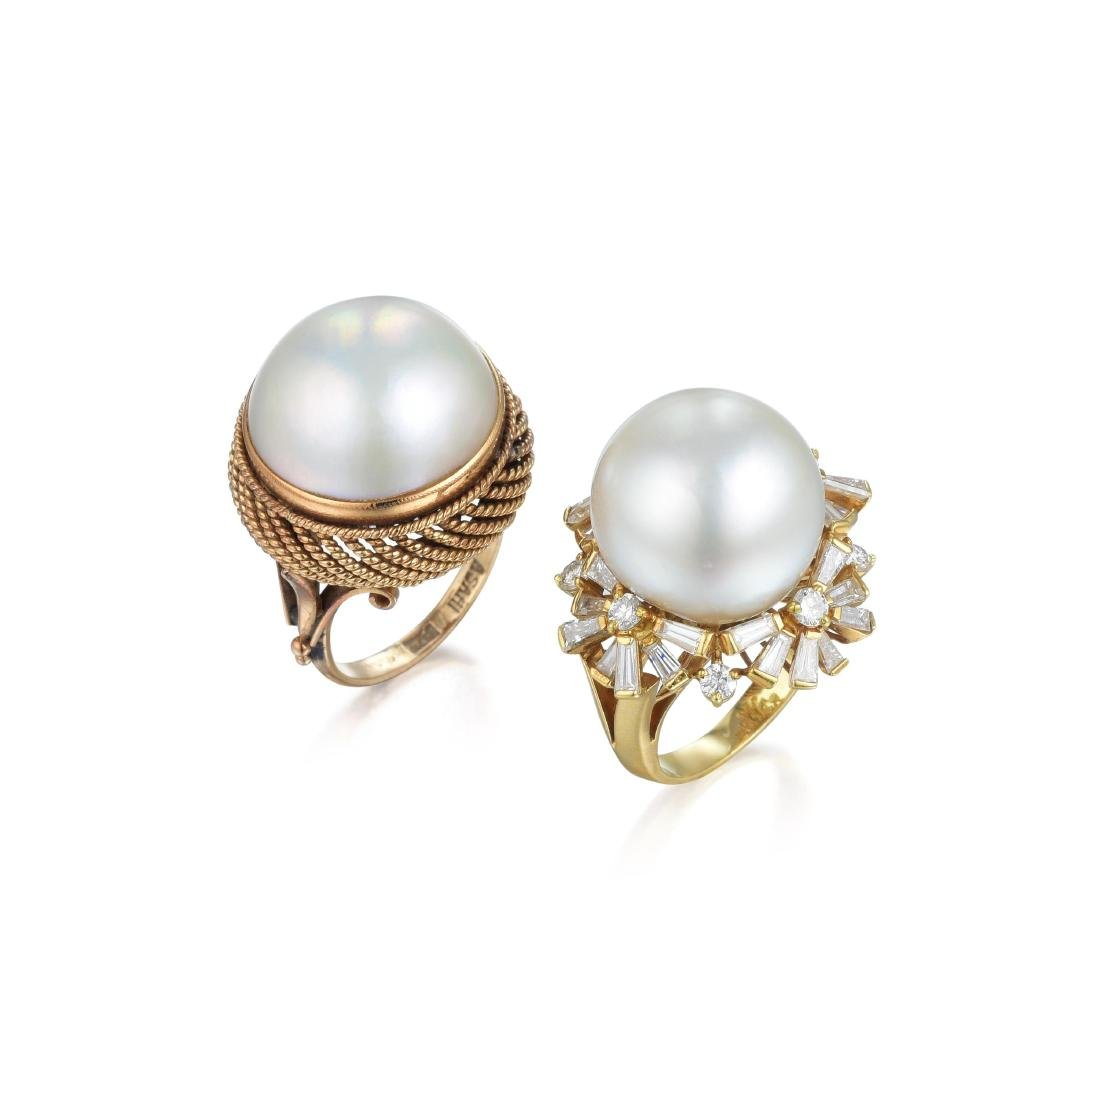 A Lot of Two Pearl and Diamond Rings - 2